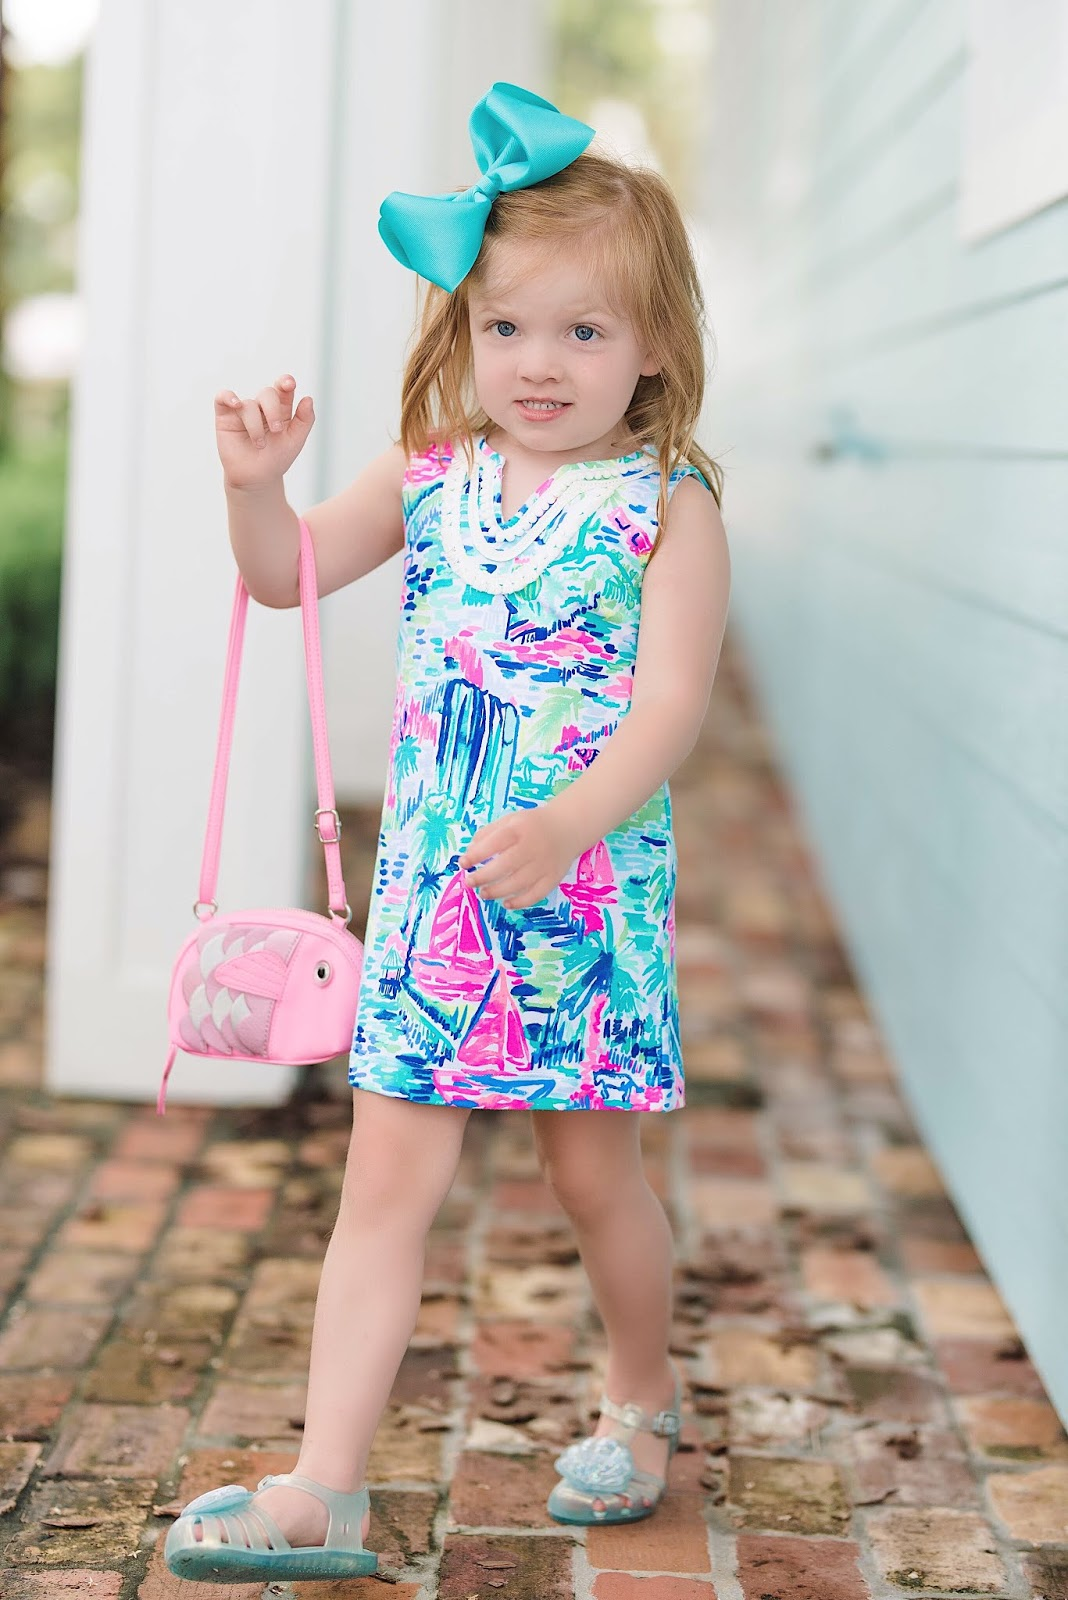 Lilly Pulitzer Girls Mini Harper Dress in Muti Salt in the Air - Something Delightful Blog